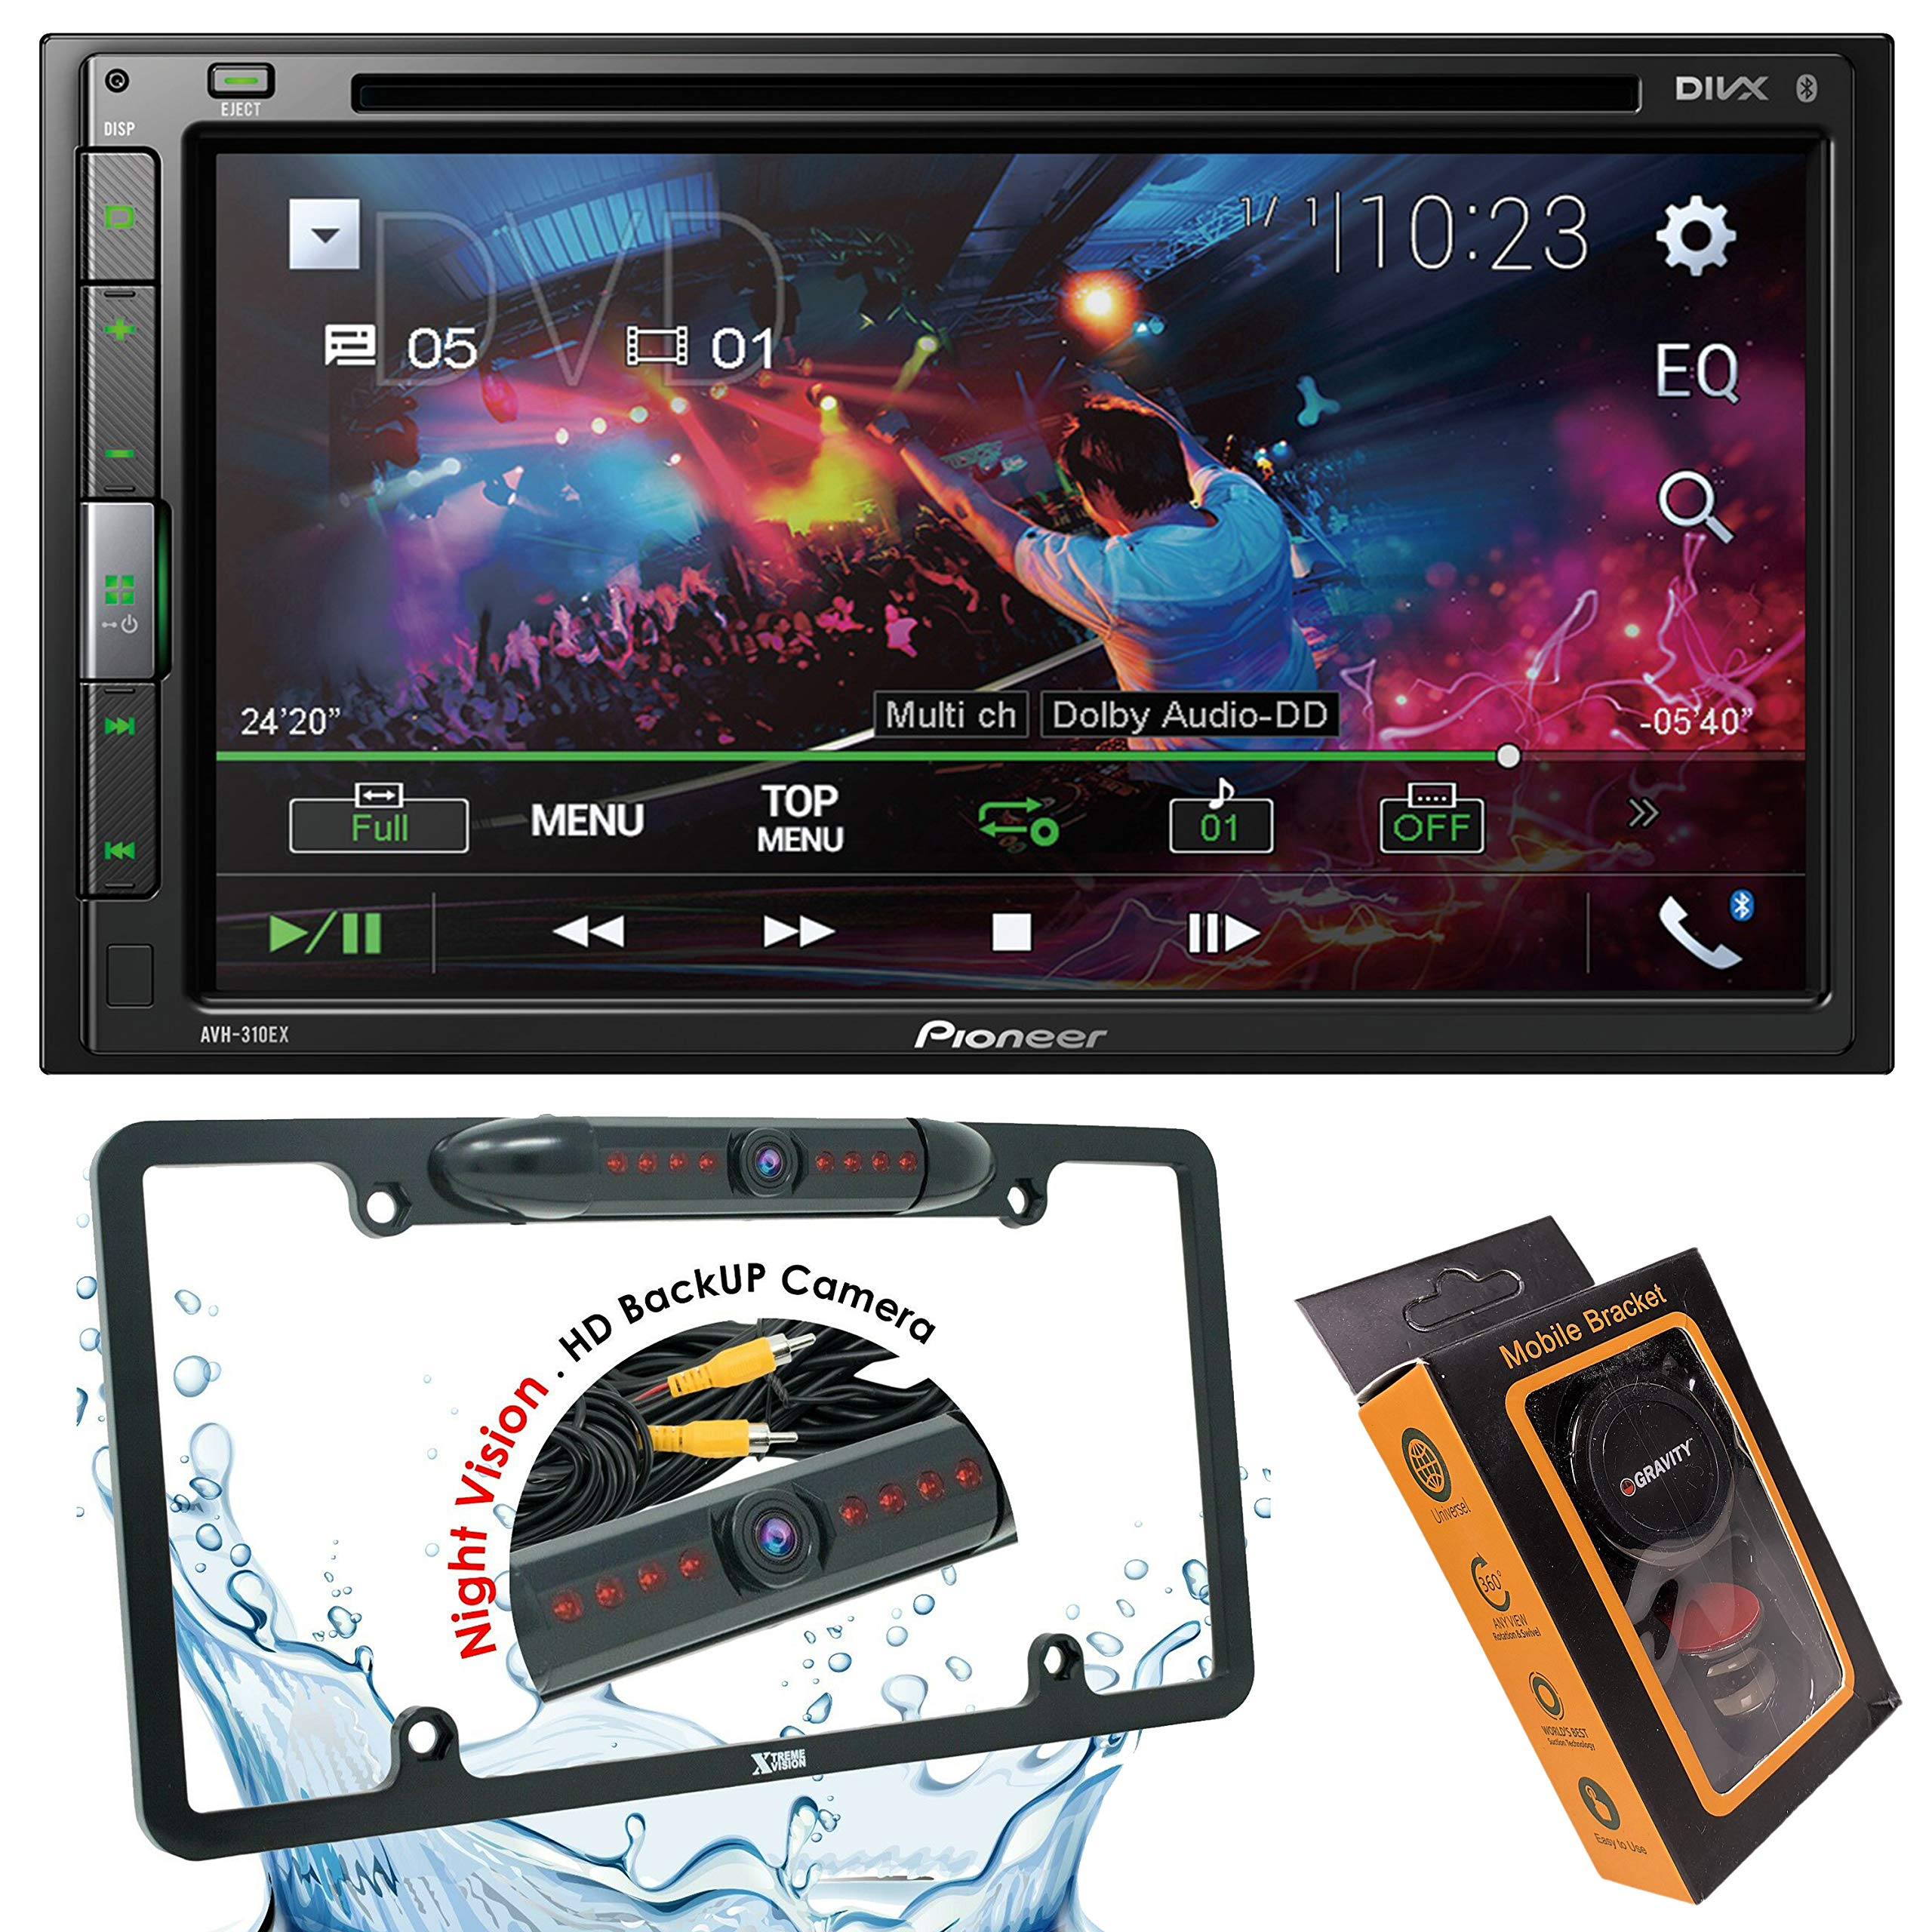 Pioneer AVH-310EX Double-Din 6.8-Inch in-Dash Car DVD Receiver with Built-in Bluetooth + License Backup Camera Included + Gravity Magnet Phone Holder by PIONEER